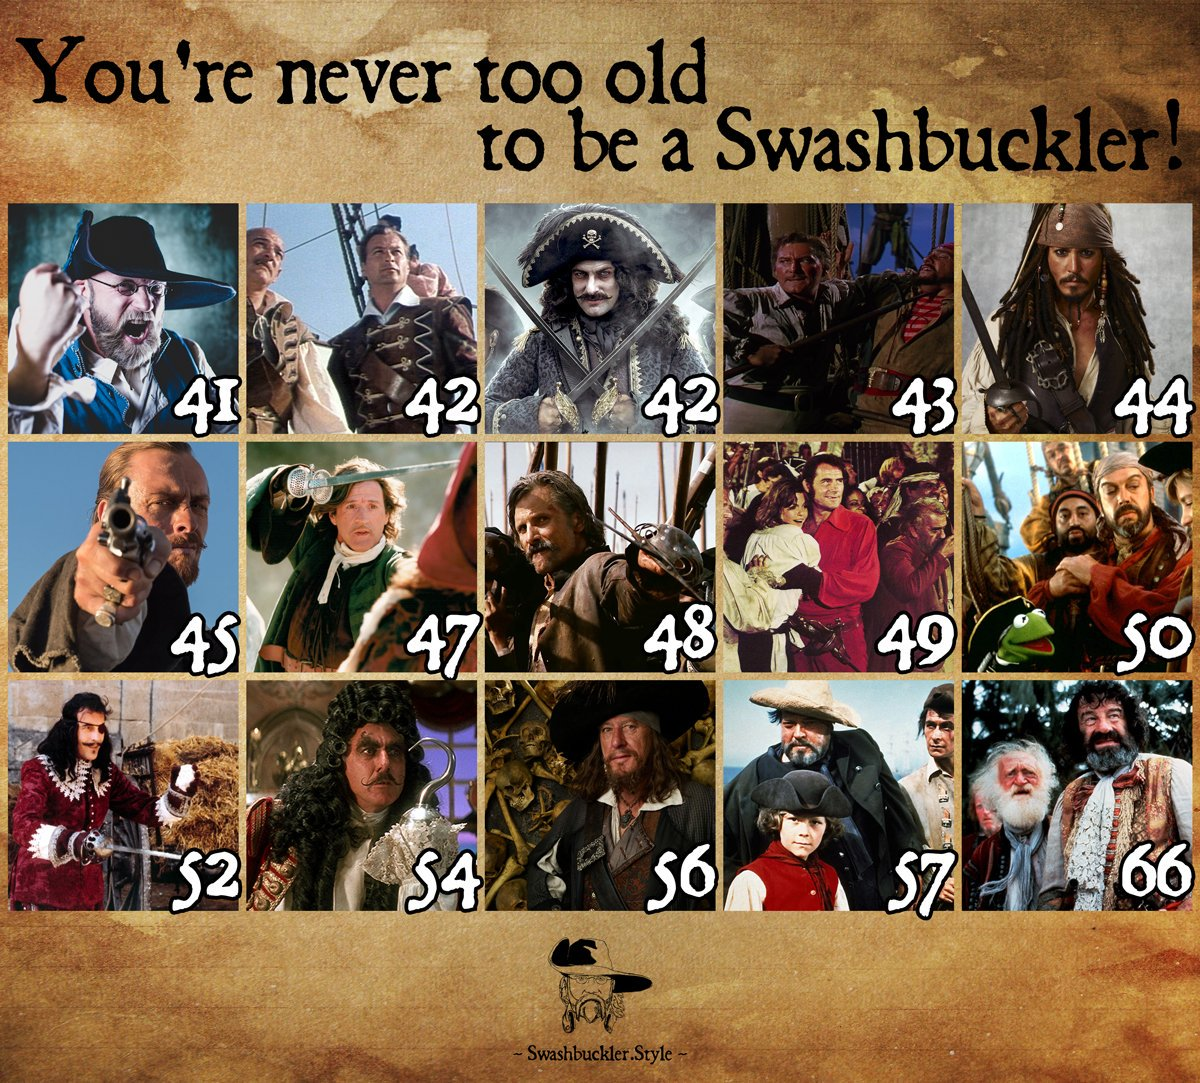 And who knows the movies?   #larp #pirateslife #yohoo #pirates #apirateslifeforme #swashbuckler #PiratesoftheCaribbean<br>http://pic.twitter.com/y4U7DbjHfG